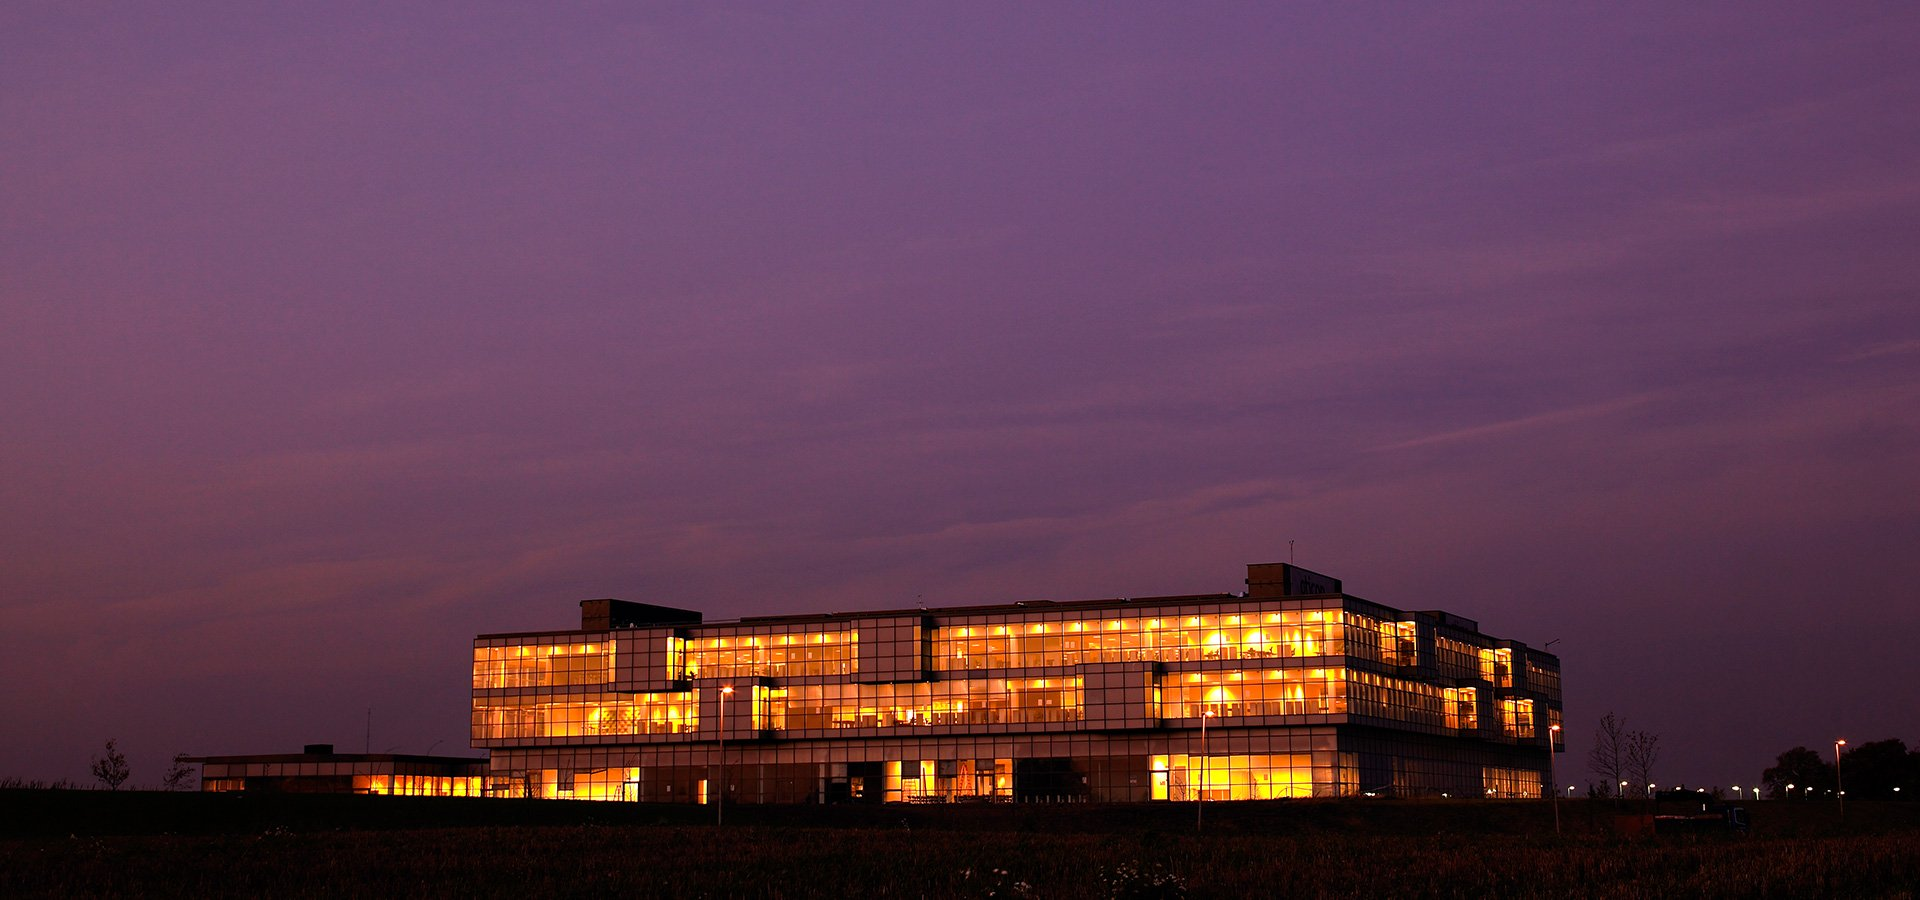 Oticon Denmark global headquarters building at night